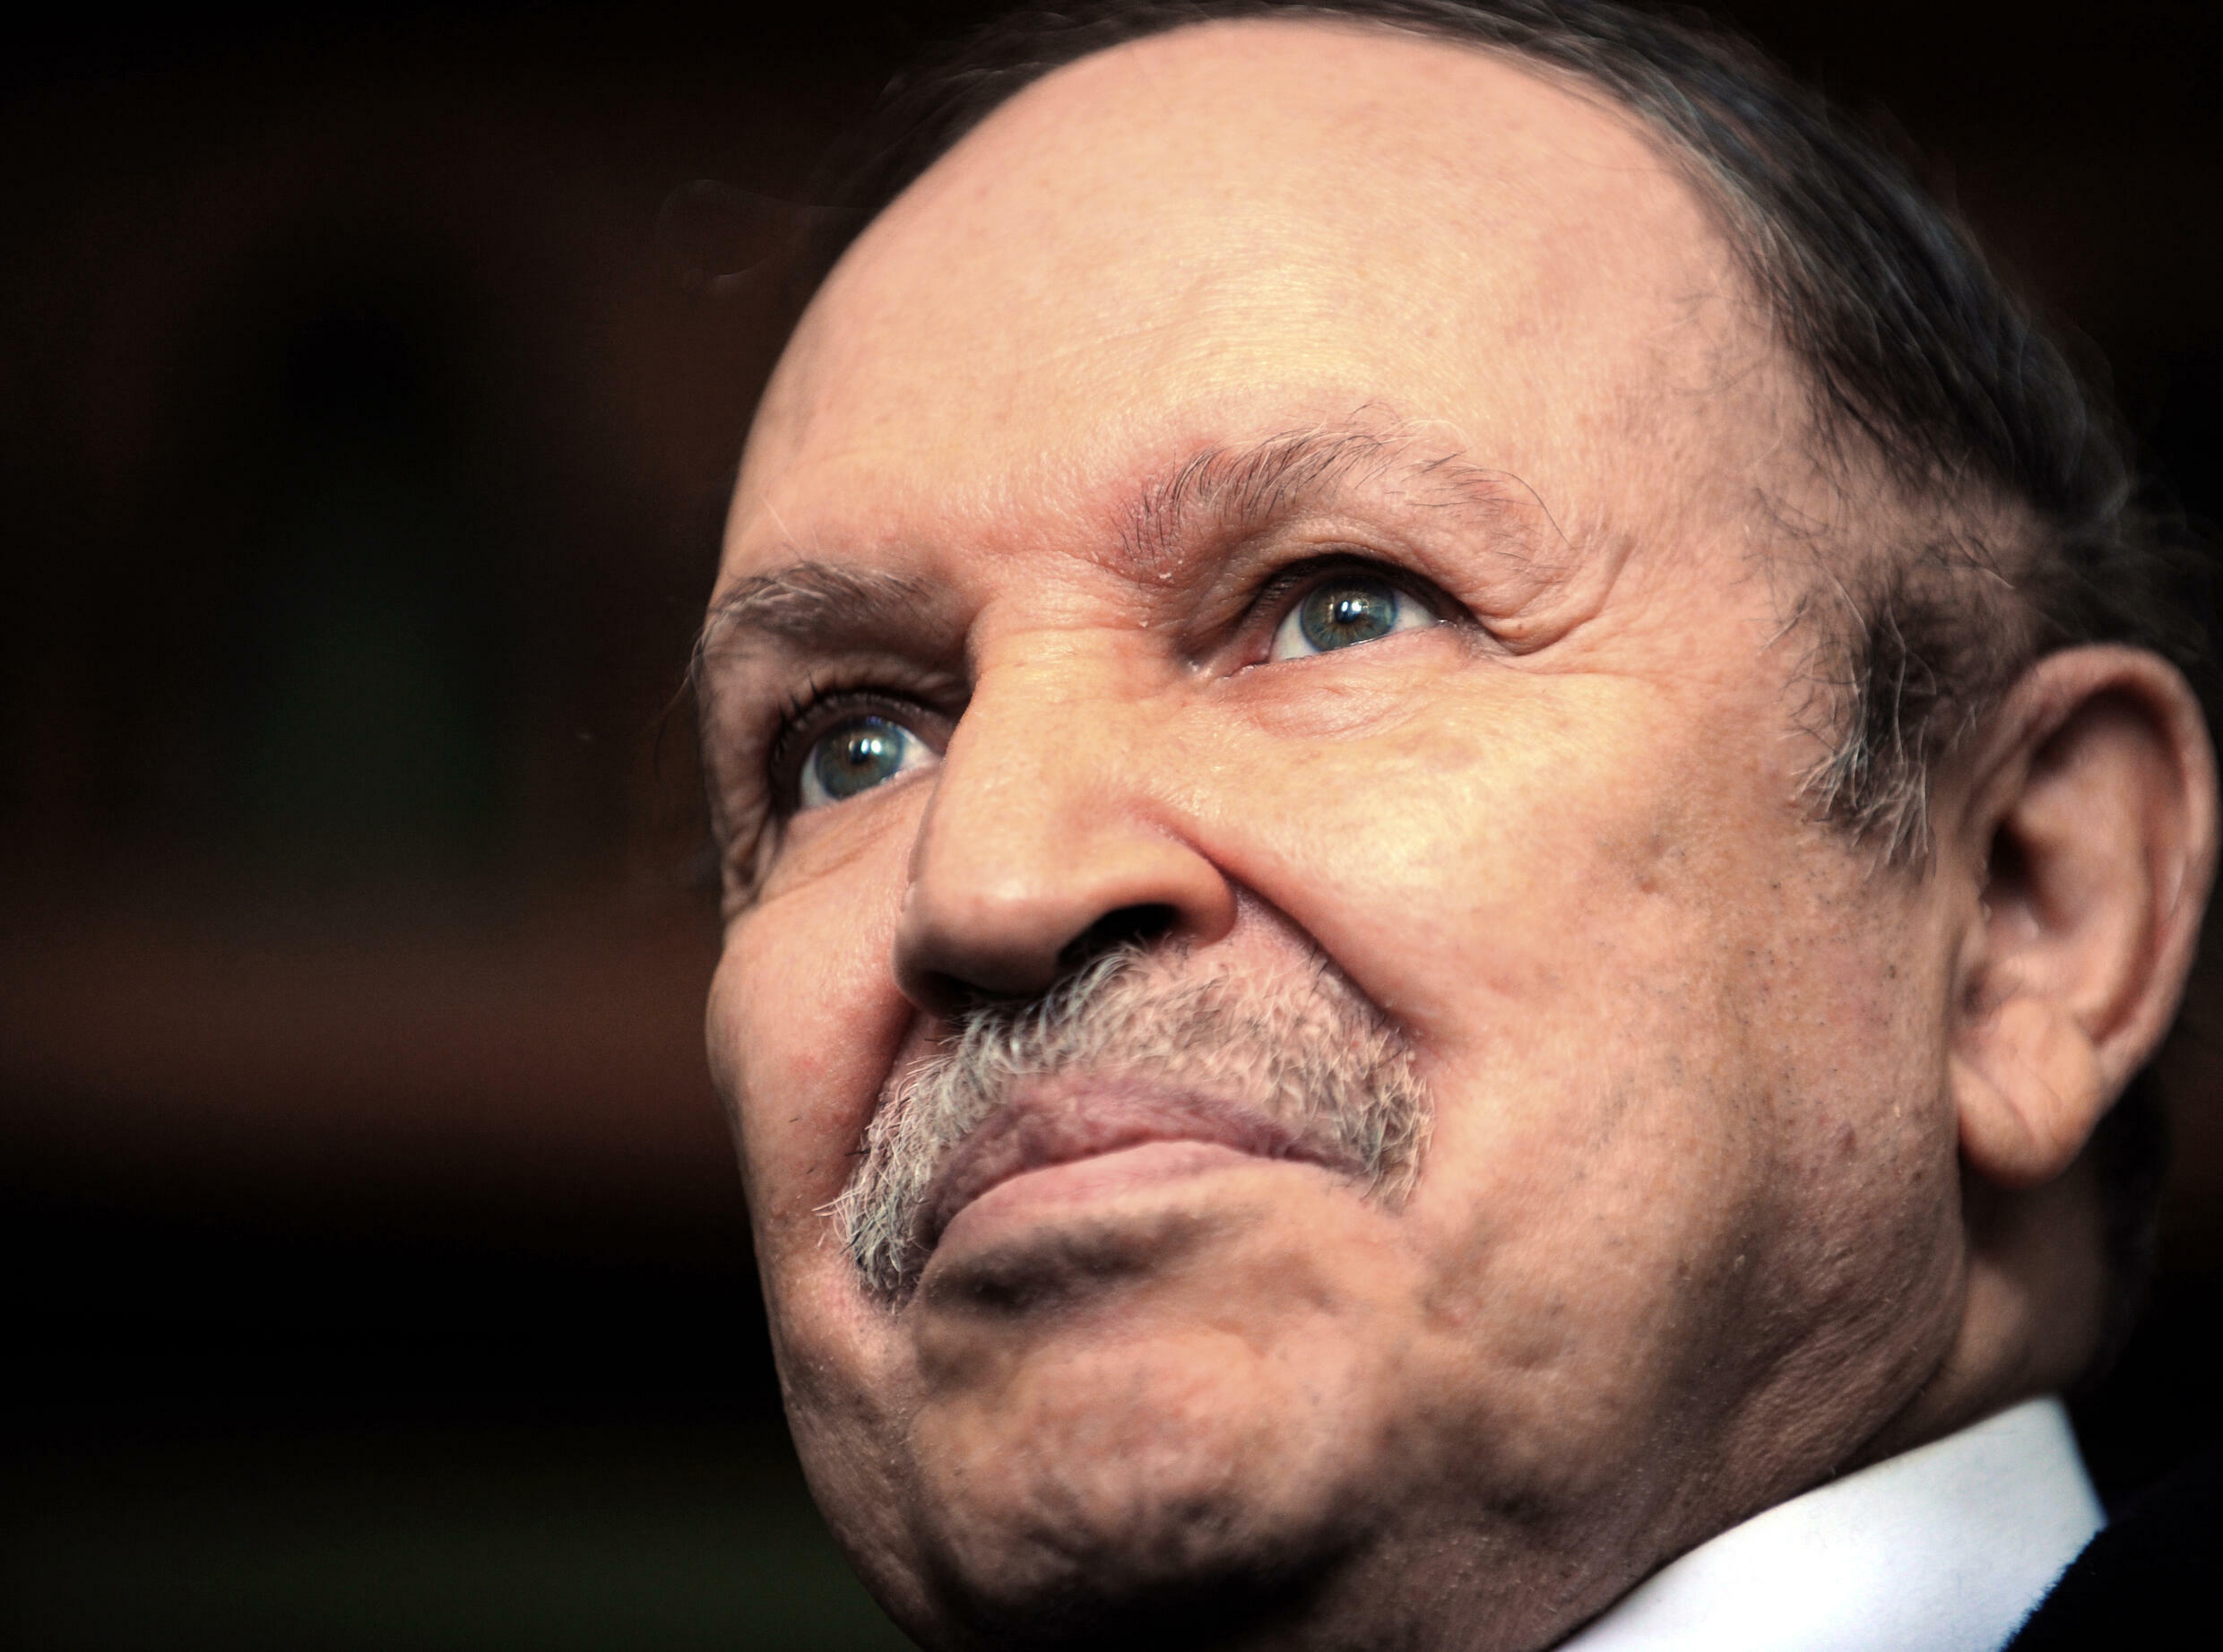 Abdelaziz Bouteflika, shown here in 2009, helped foster peace in Algeria after a decade-long civil war in the 1990s